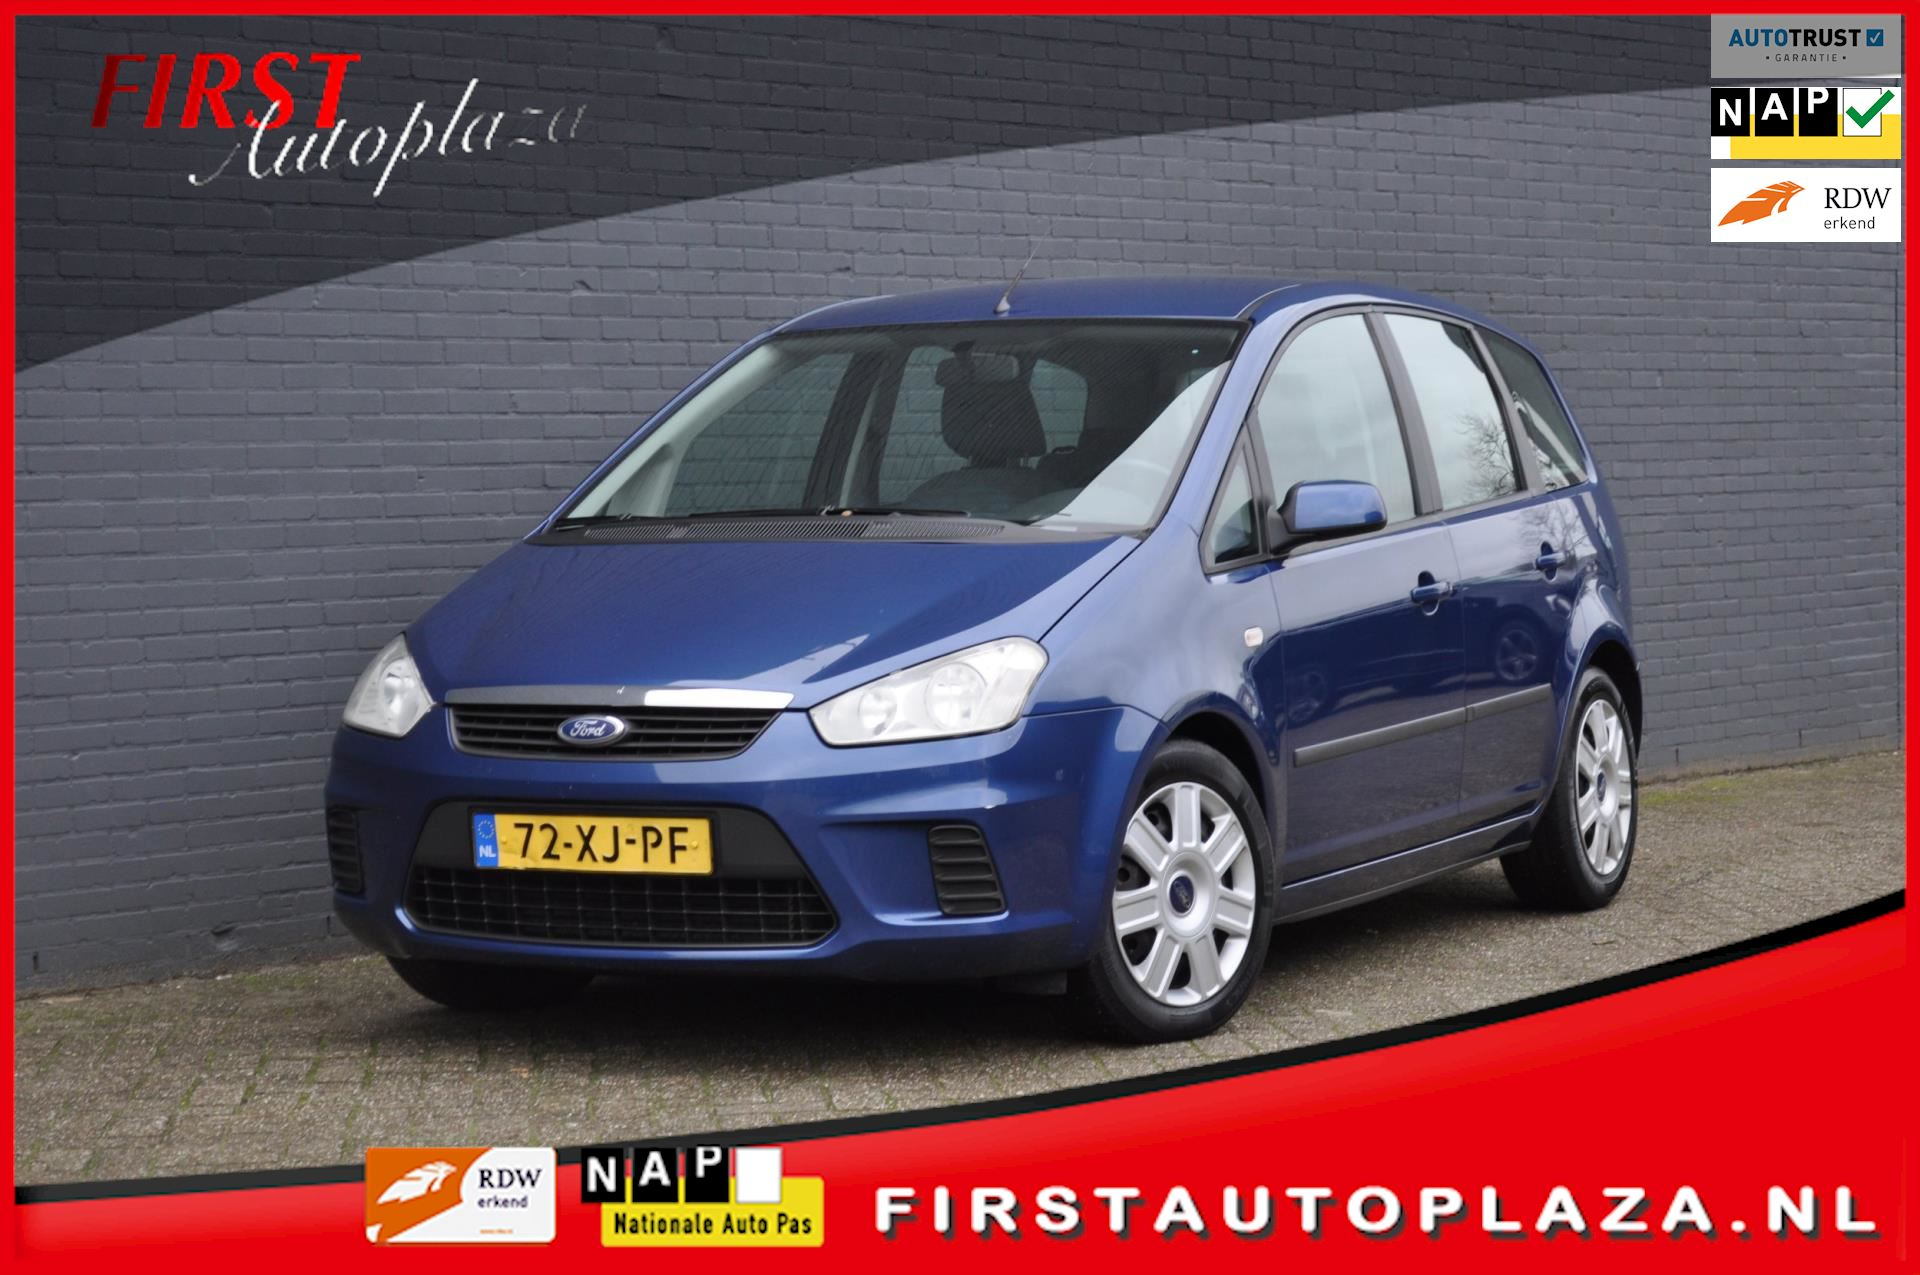 Ford C-Max occasion - FIRST Autoplaza B.V.